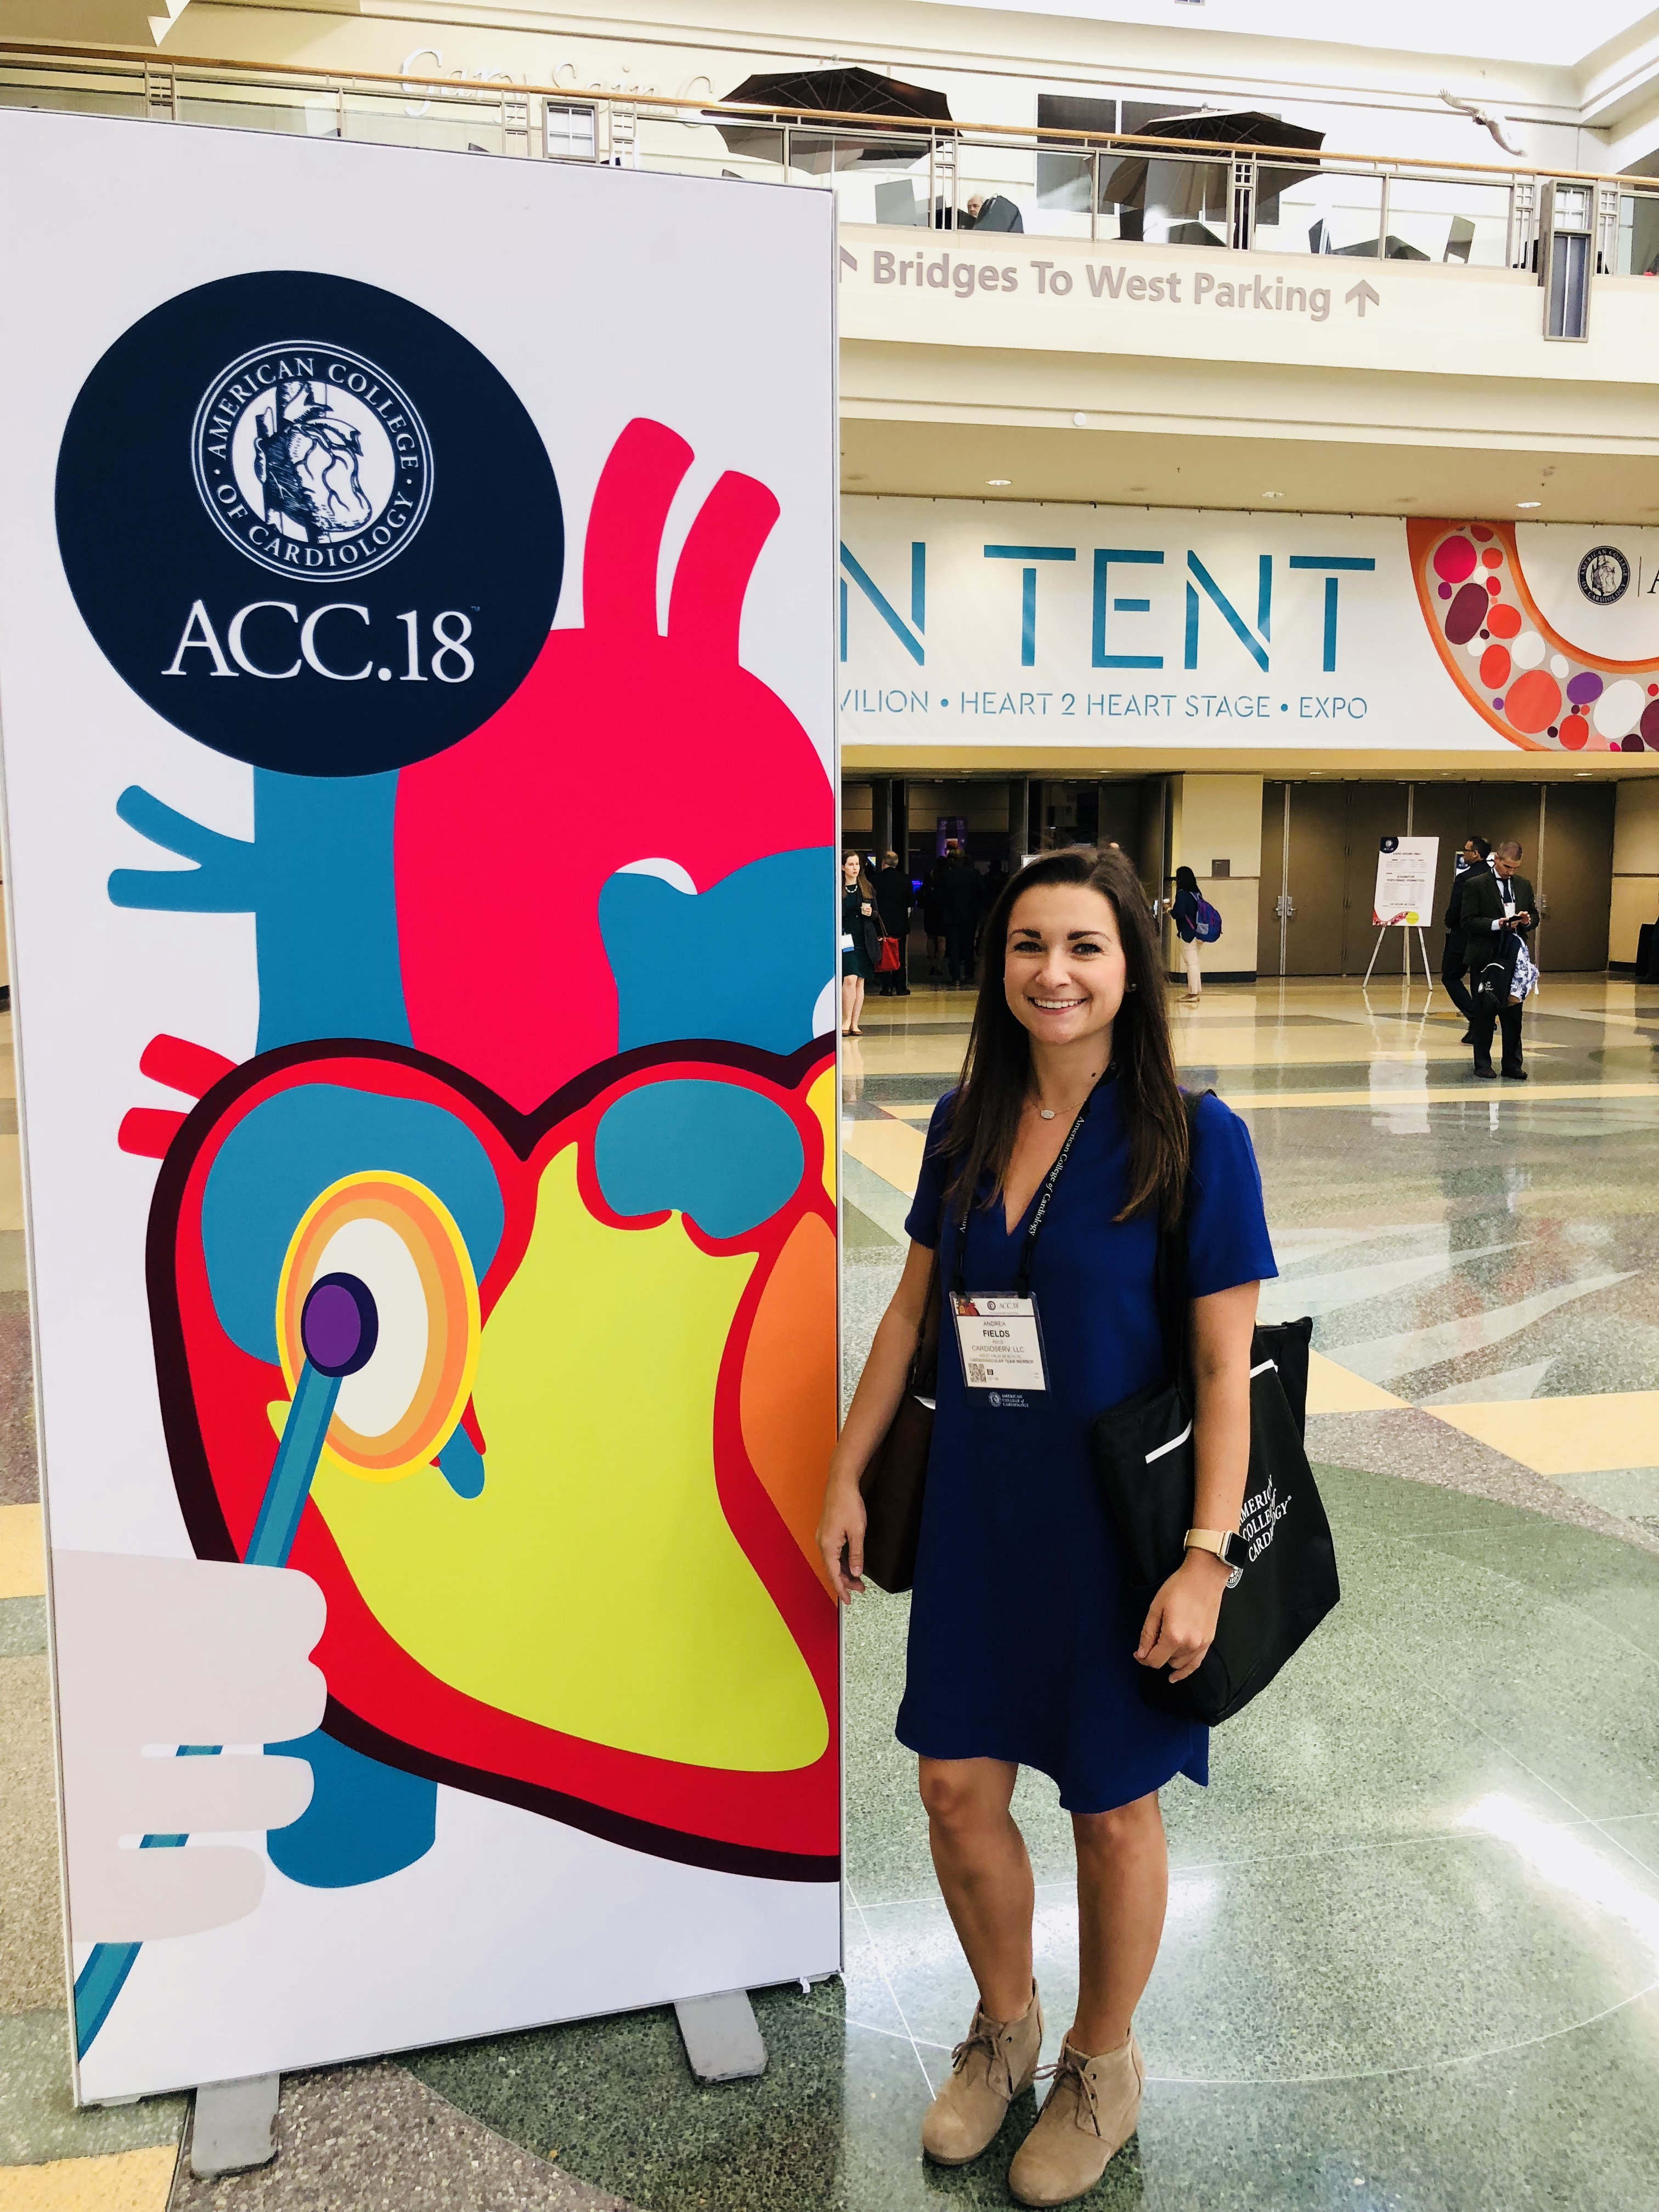 Sonographers Standpoint On The Acc18